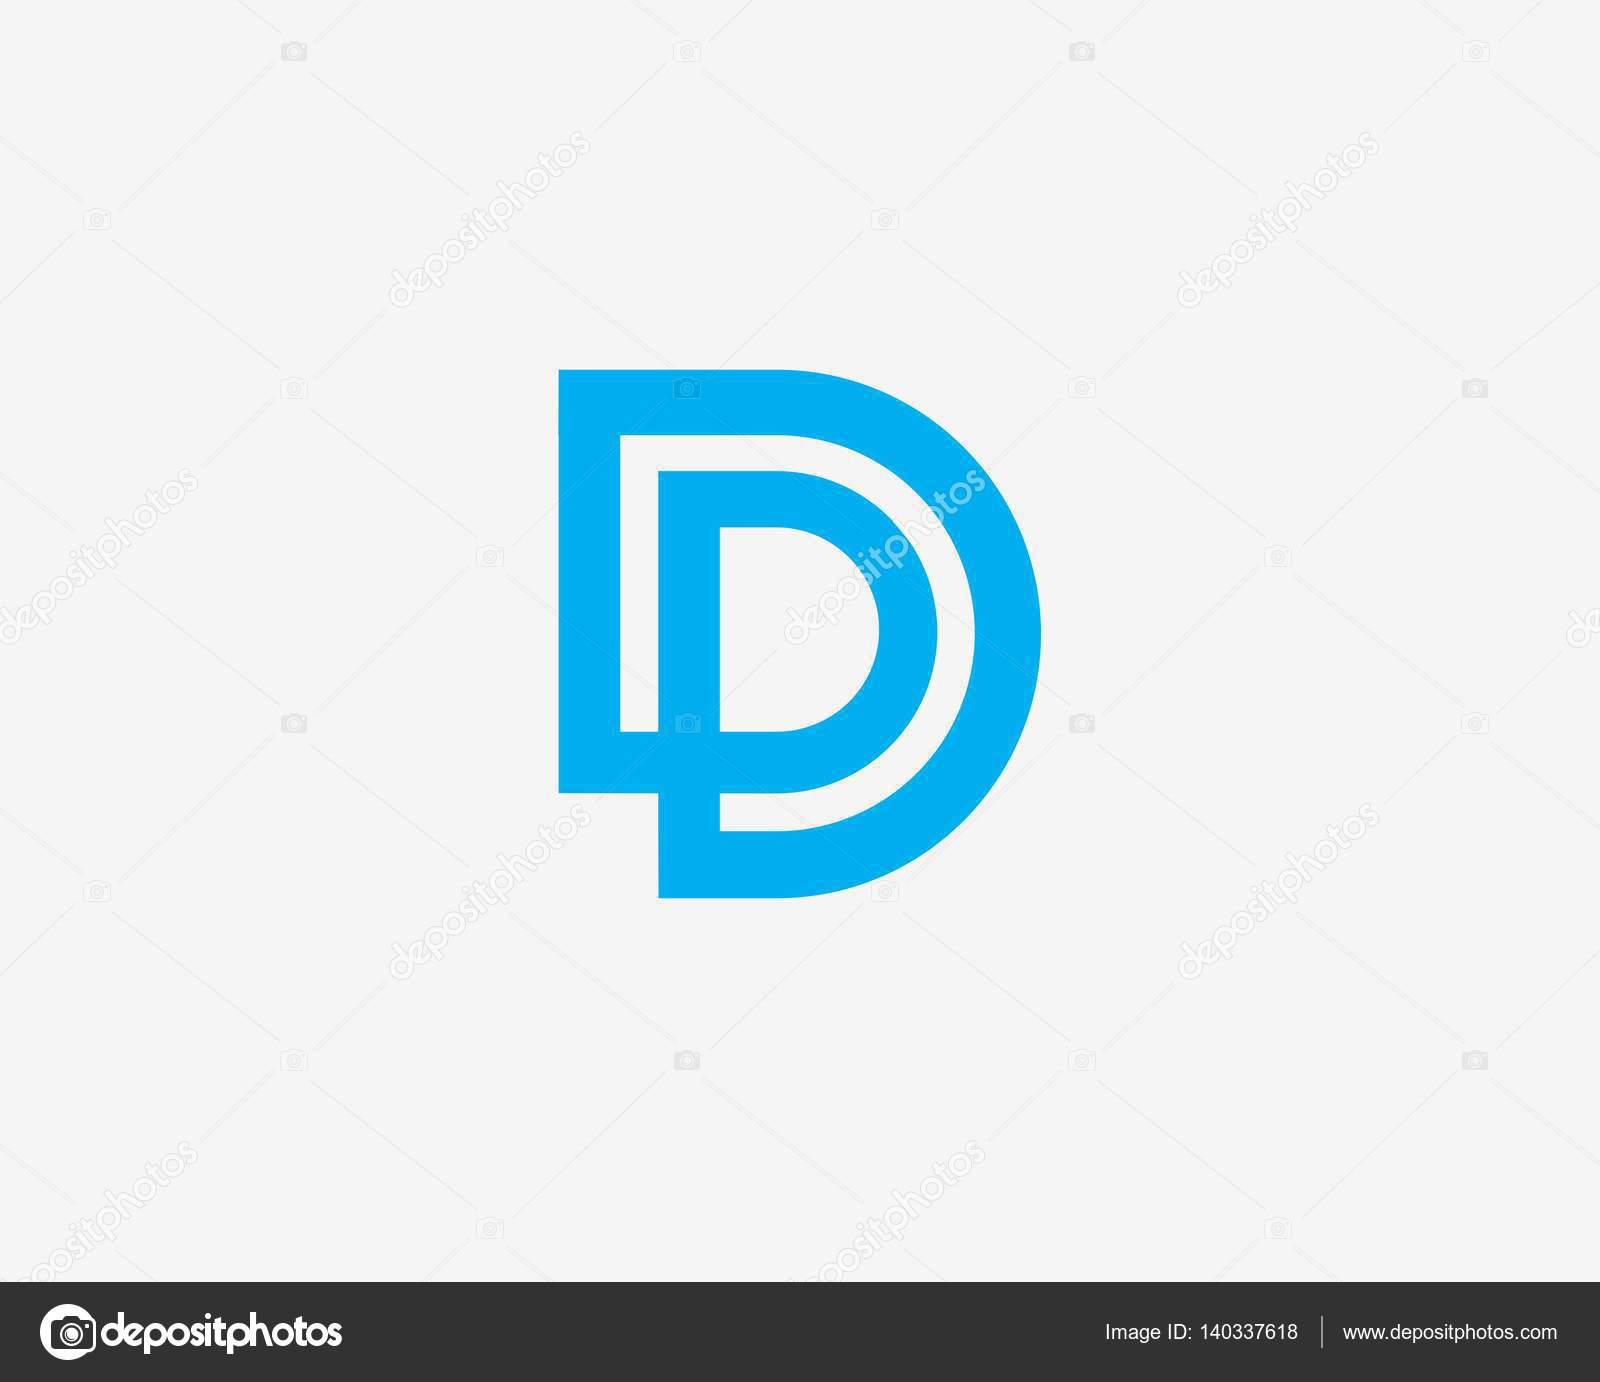 letter d logo design abstract logo icon design template